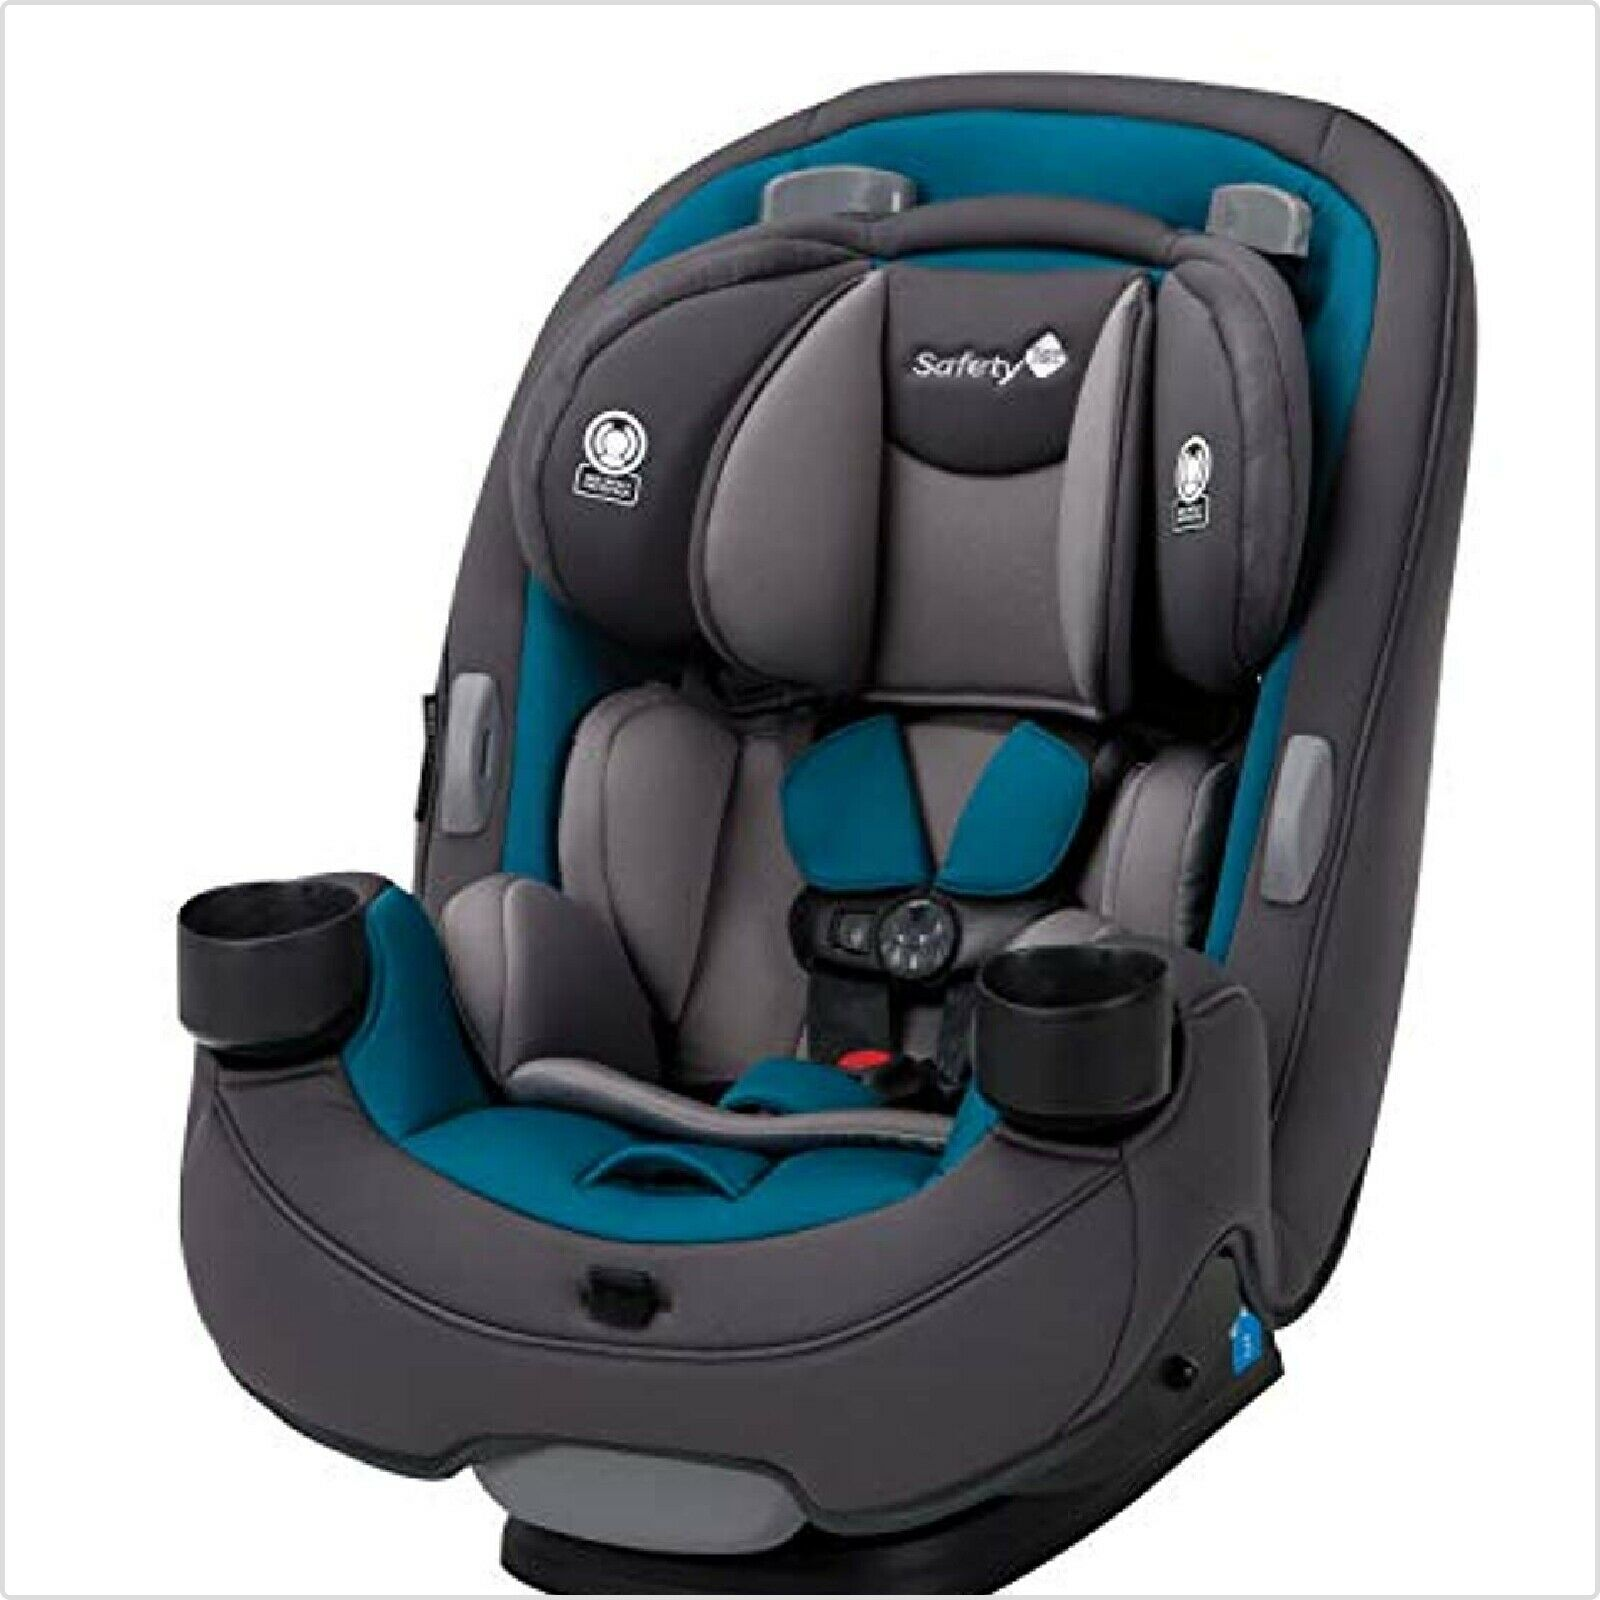 Safety 1st 3-in-1 Grow and Go Convertible Car Seat - Blue Co